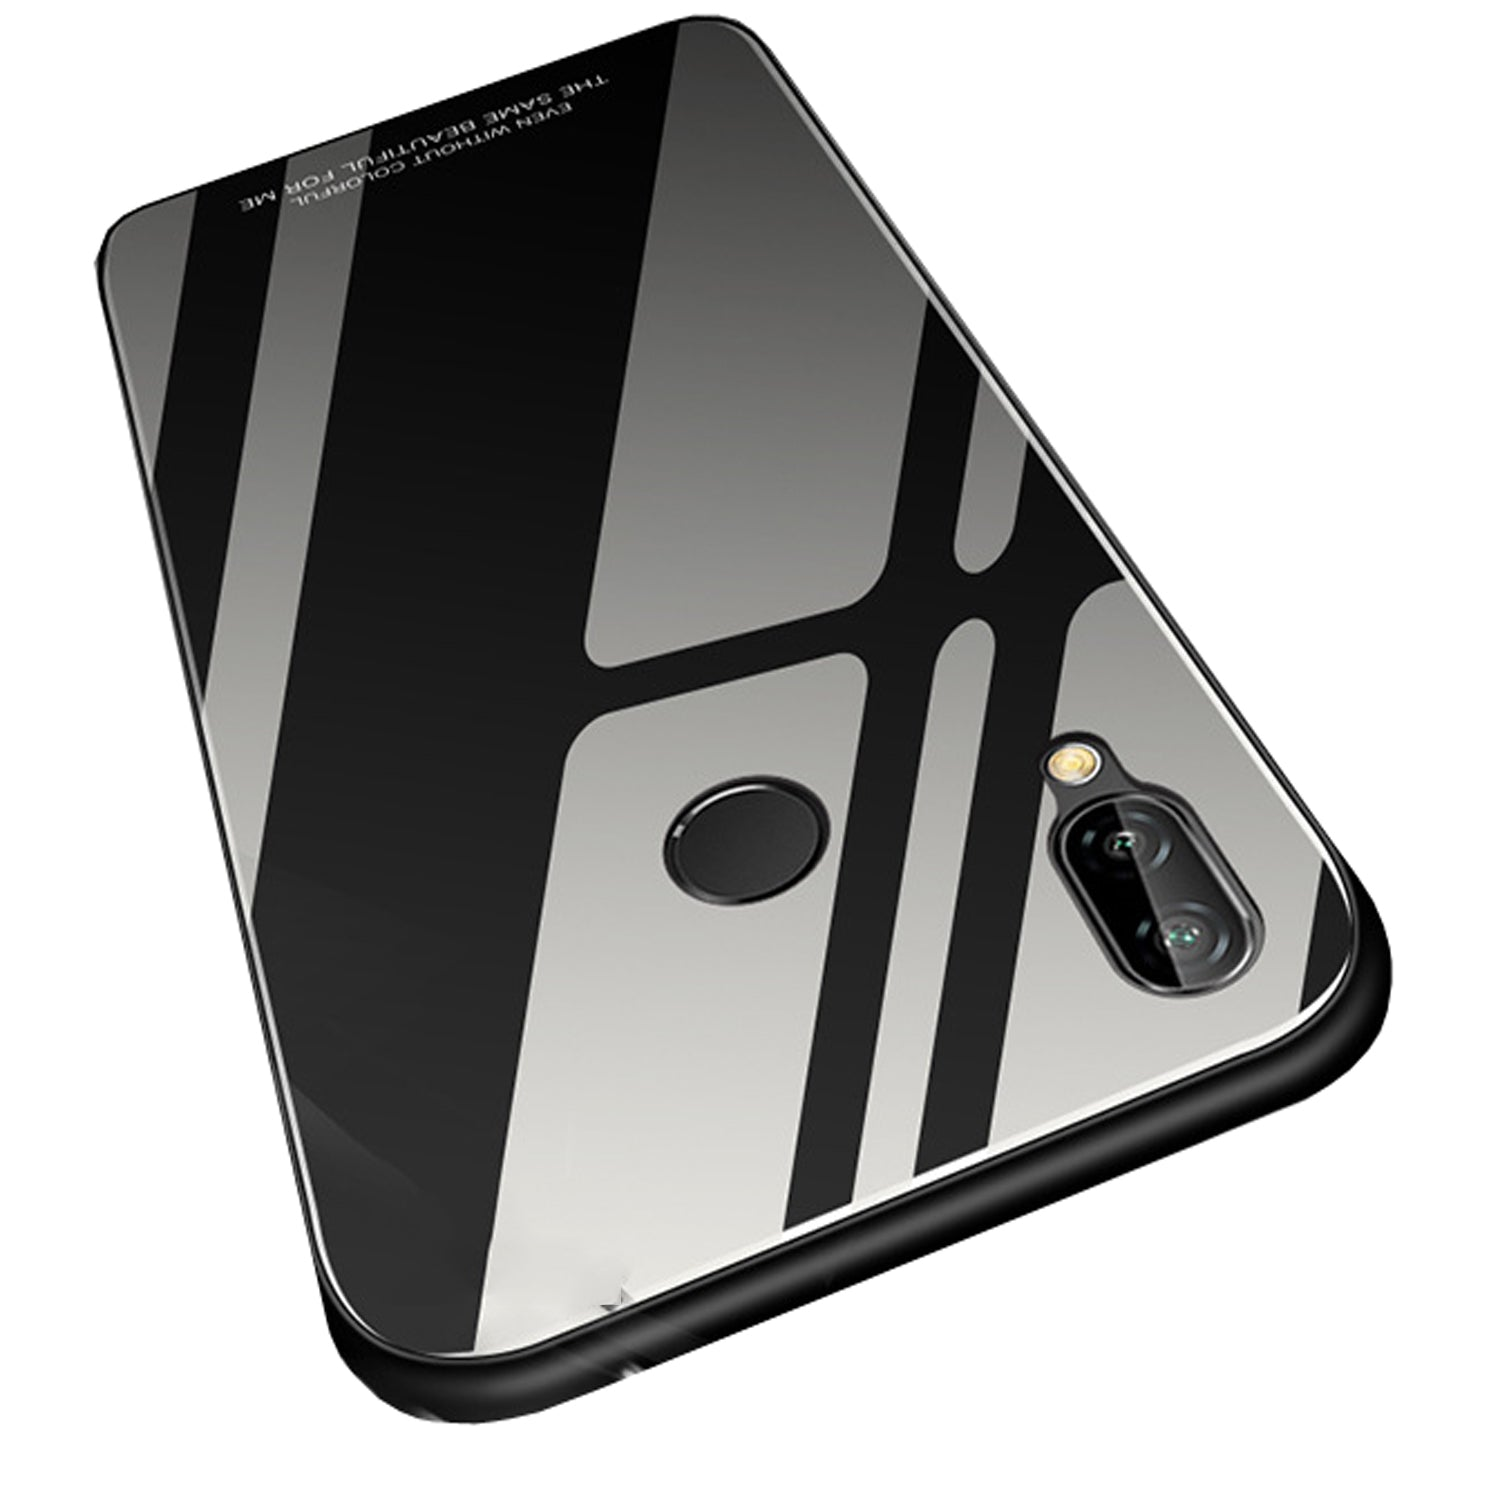 Toughened Glass Back Shock Proof Slim Case Cover for Huawei P20 Lite - Black - Mobizang